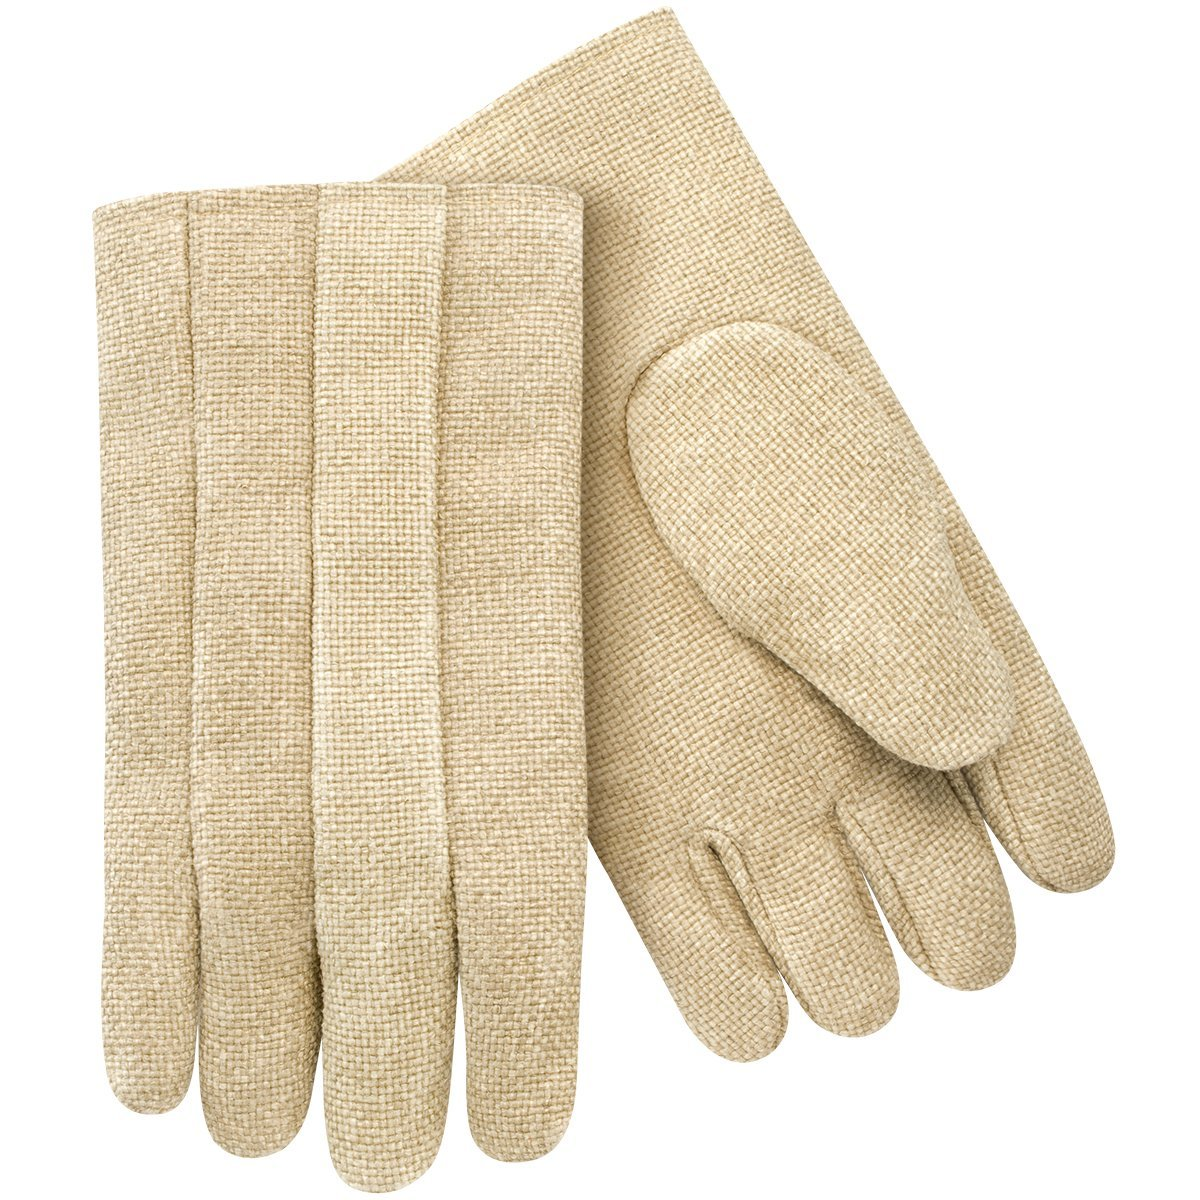 Steiner 07114 High Temperature Work Gloves, 35-Ounce Z-Flex Plus 11-Ounce Wool Lined, 14-Inch